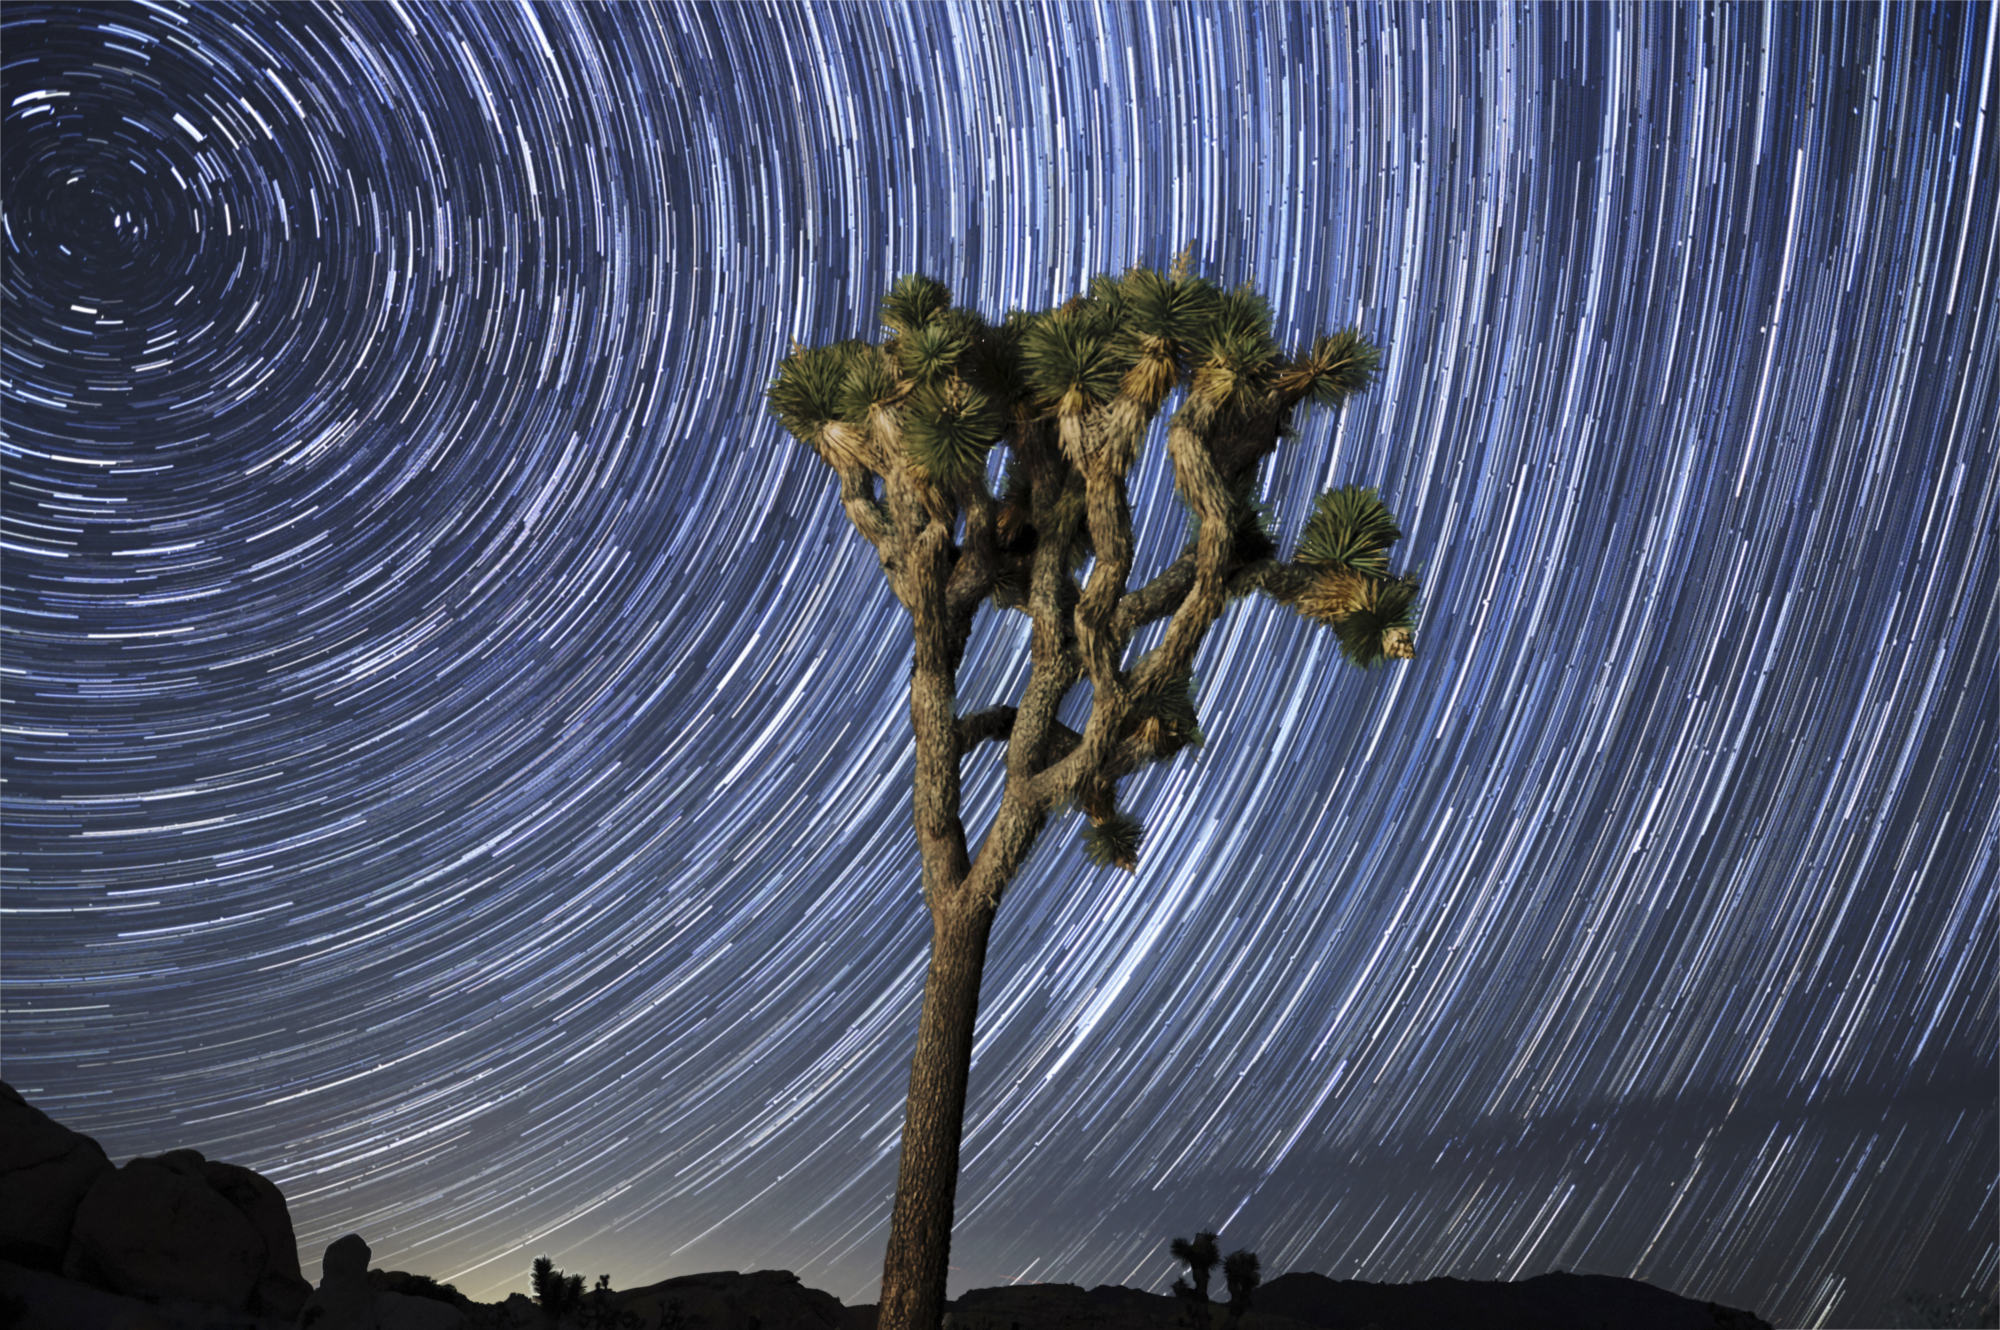 Joshua Tree Photo Workshop - April 7th through 10th, 2019